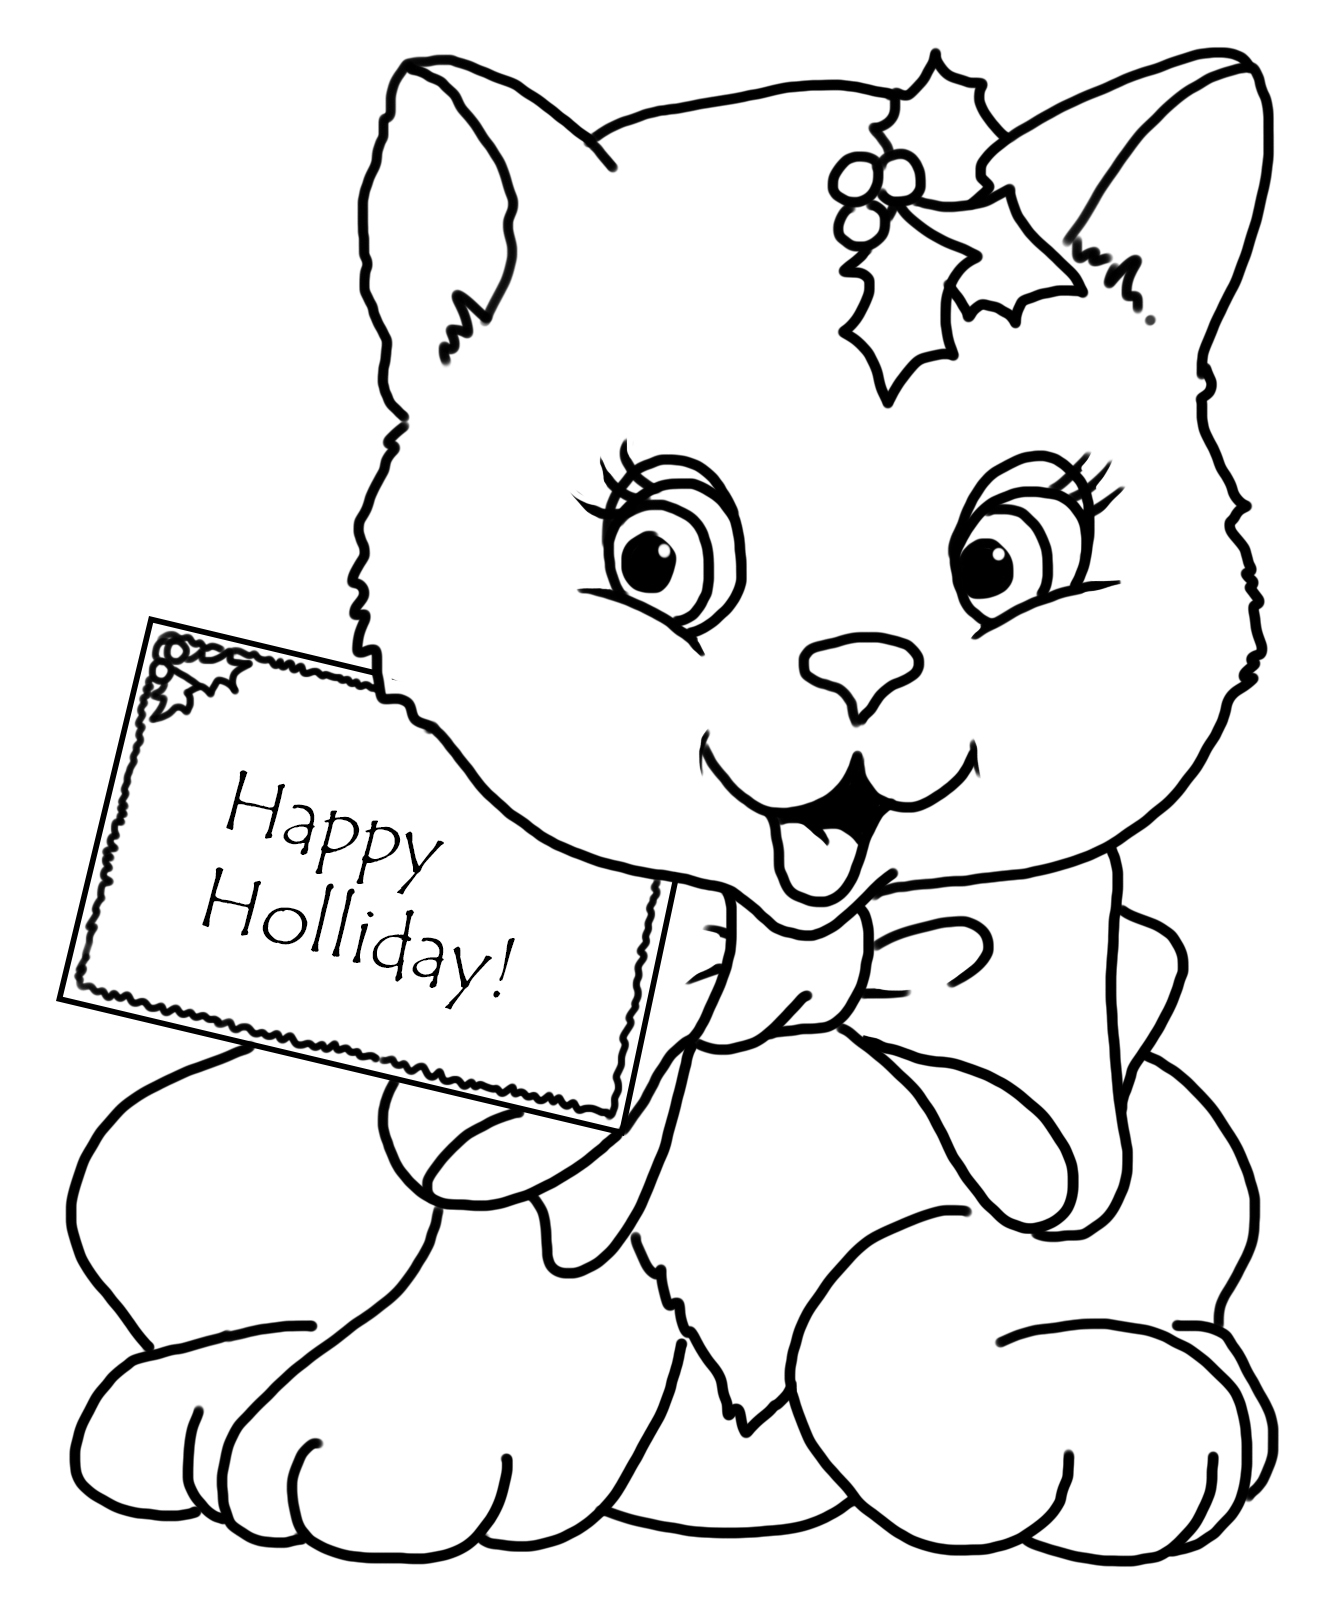 cat christmas coloring pages free s christmas cat in stocking8a58 coloring pages printable christmas cat pages coloring